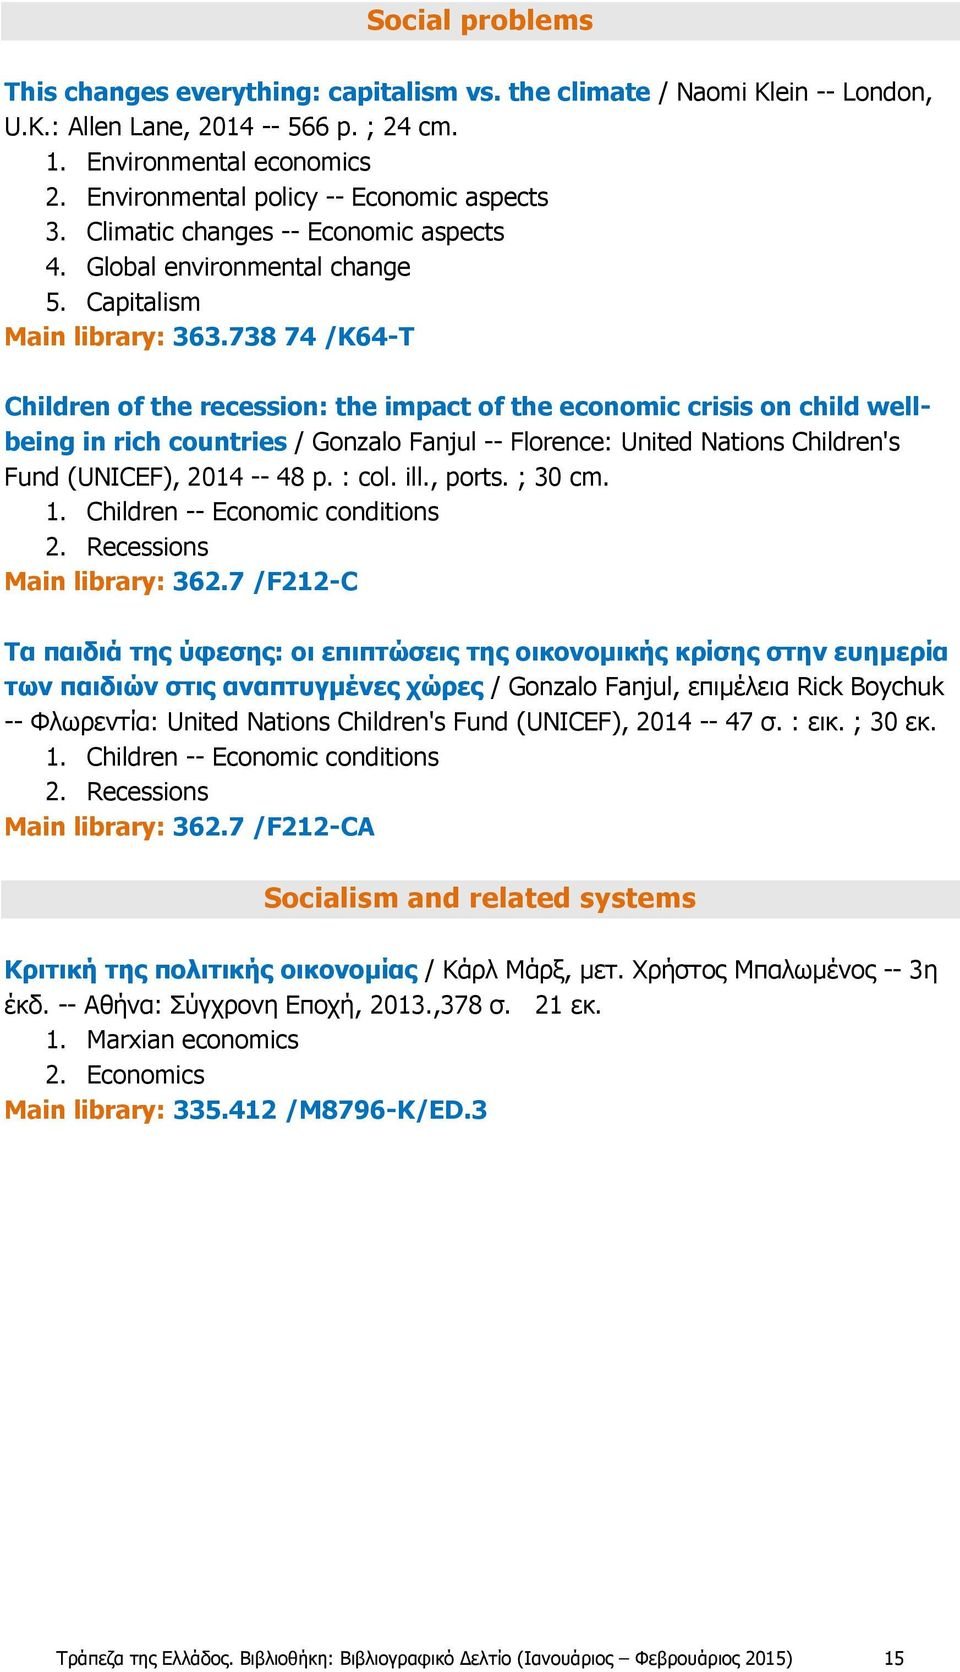 738 74 /K64-T Children of the recession: the impact of the economic crisis on child wellbeing in rich countries / Gonzalo Fanjul -- Florence: United Nations Children's Fund (UNICEF), 2014 -- 48 p.